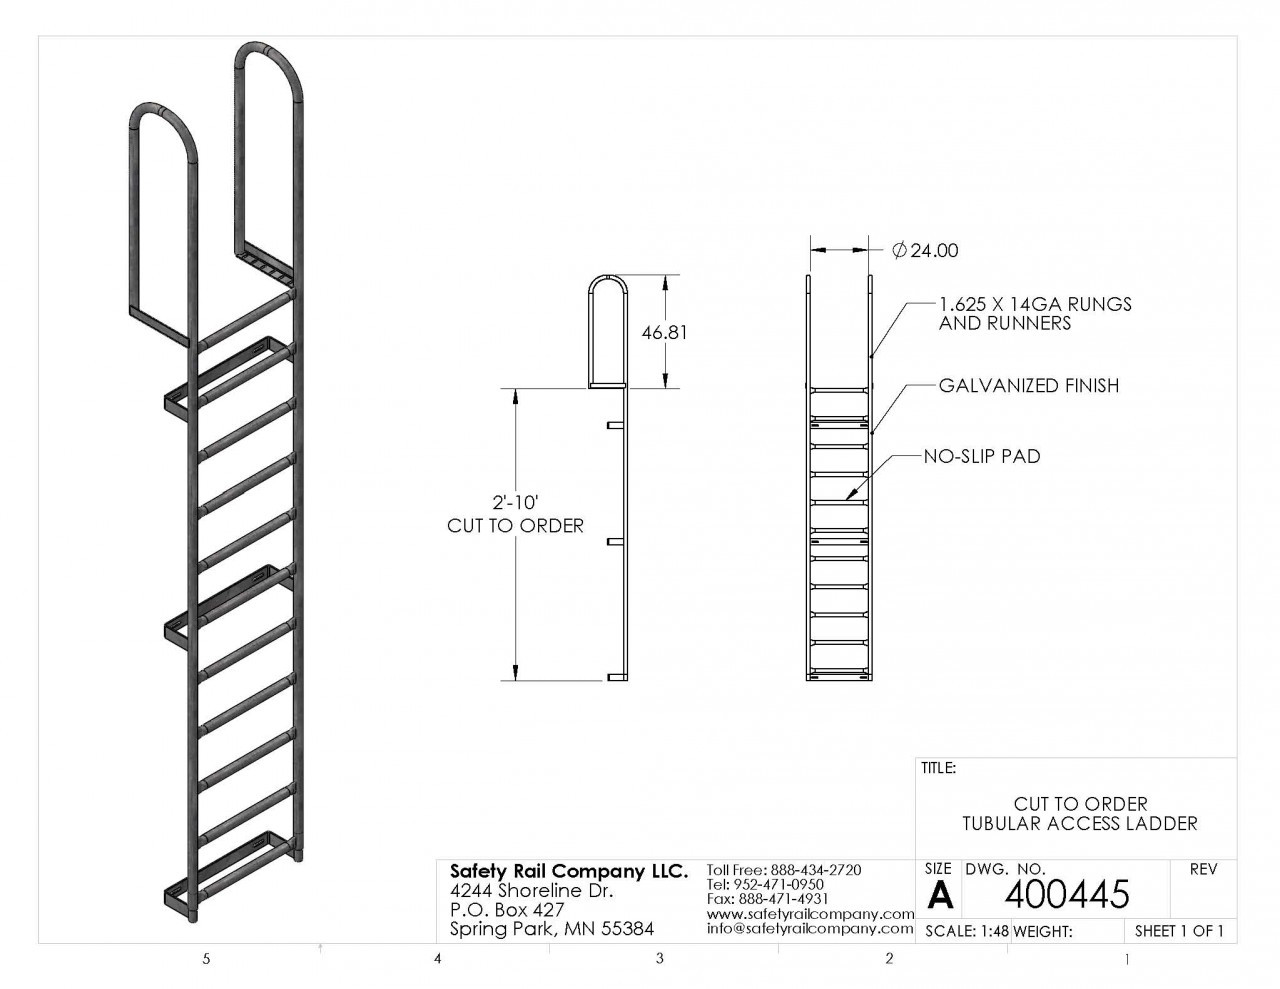 Osha Fixed Ladder Diagrams Simple Wiring Logic Diagram Pictures Src Access Cut To Required Length Safety Rail